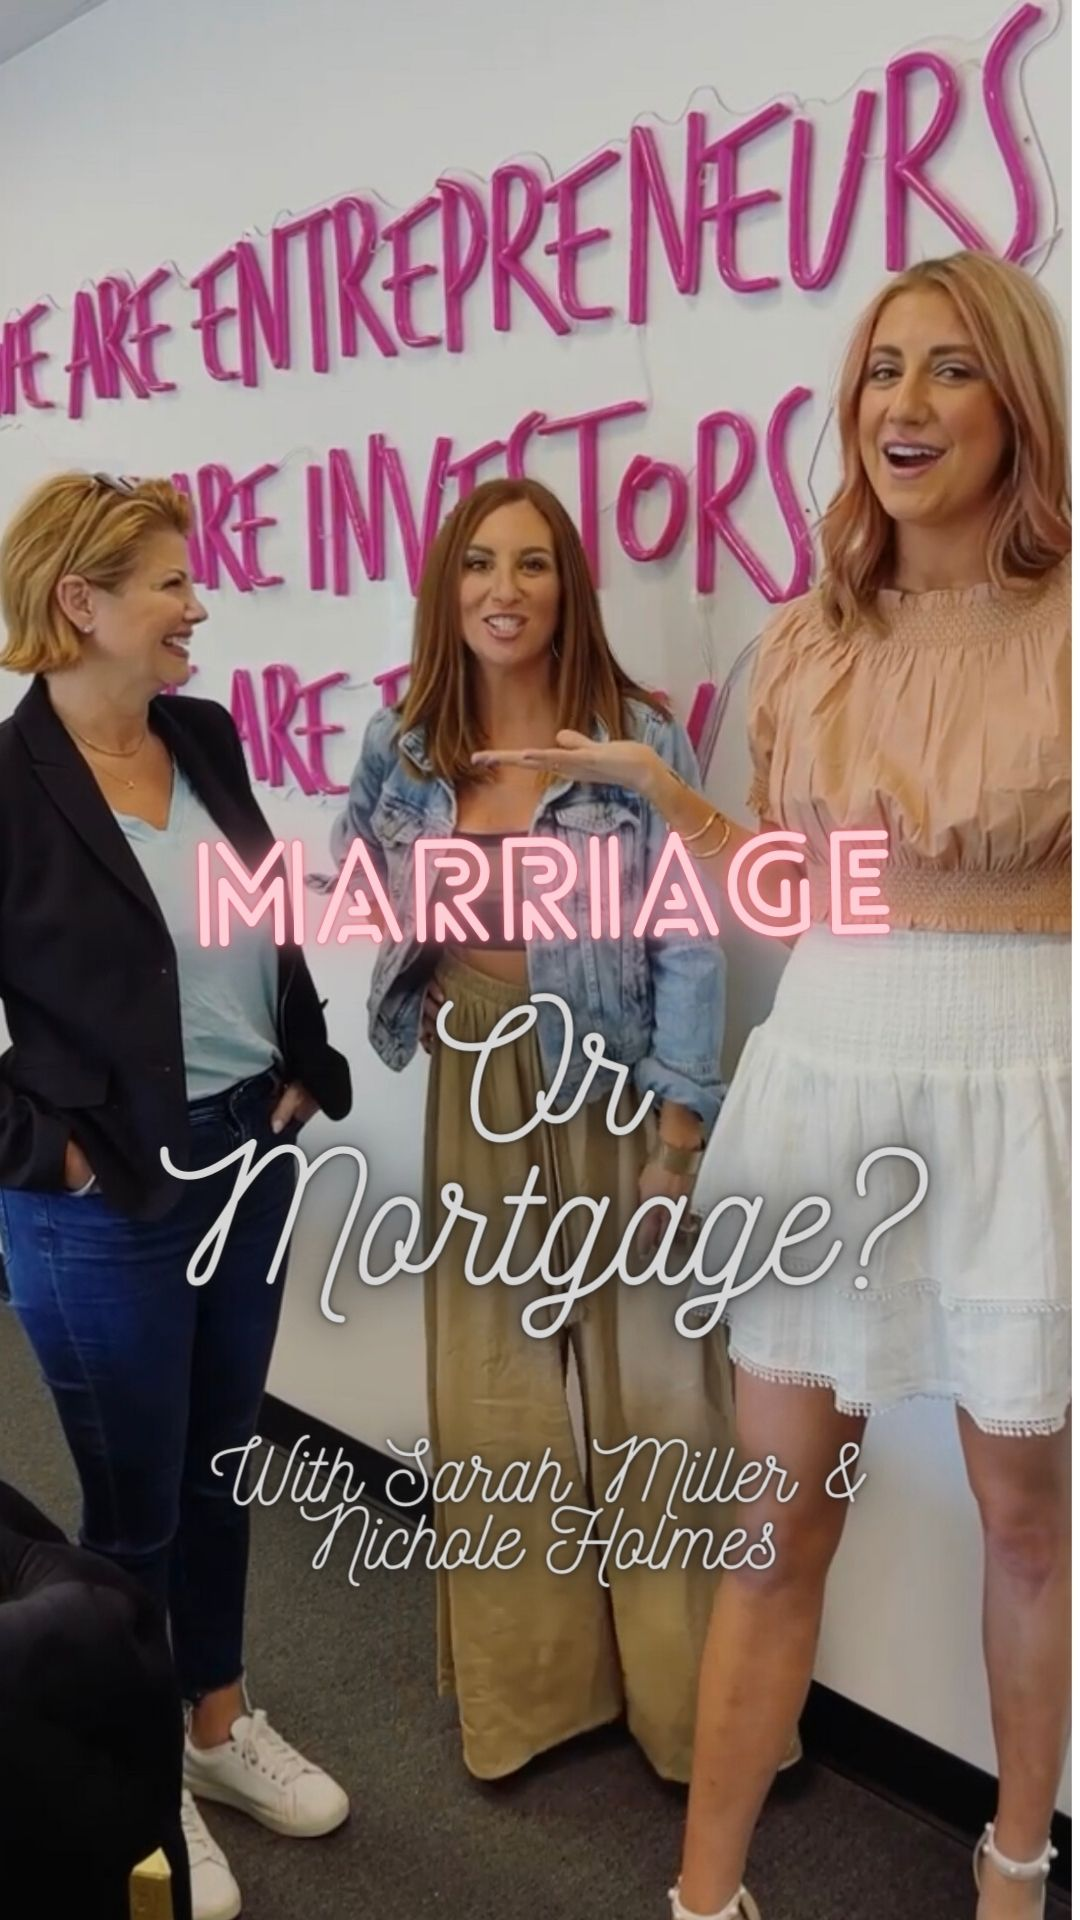 Marriage Or Mortgage with Netflix's Sarah Miller & Nichole Holmes